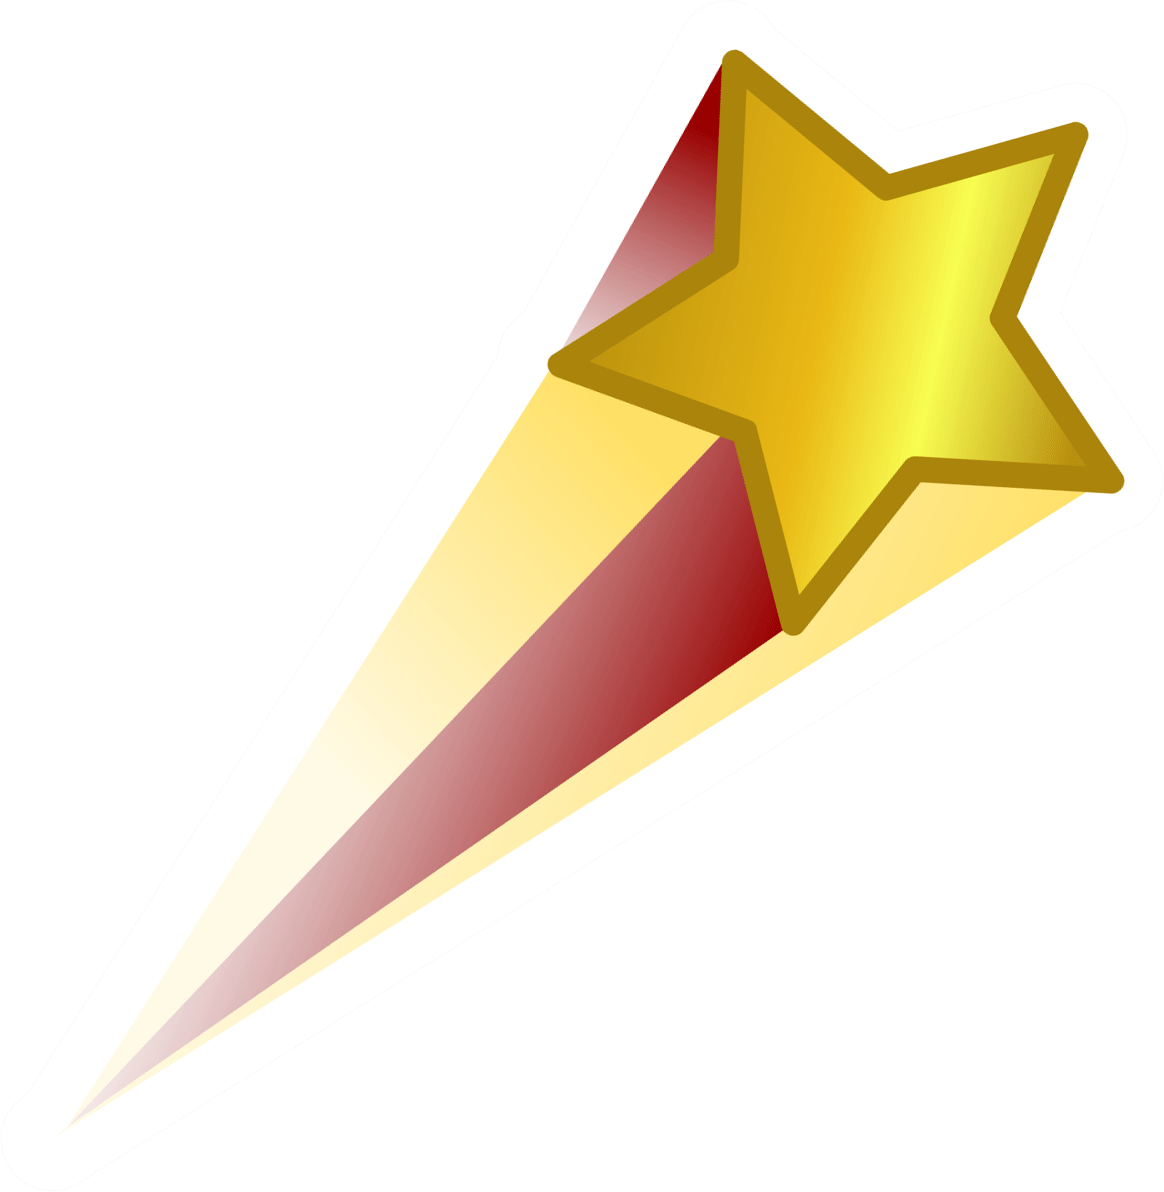 Shooting star png transparent background. Red gold stickpng